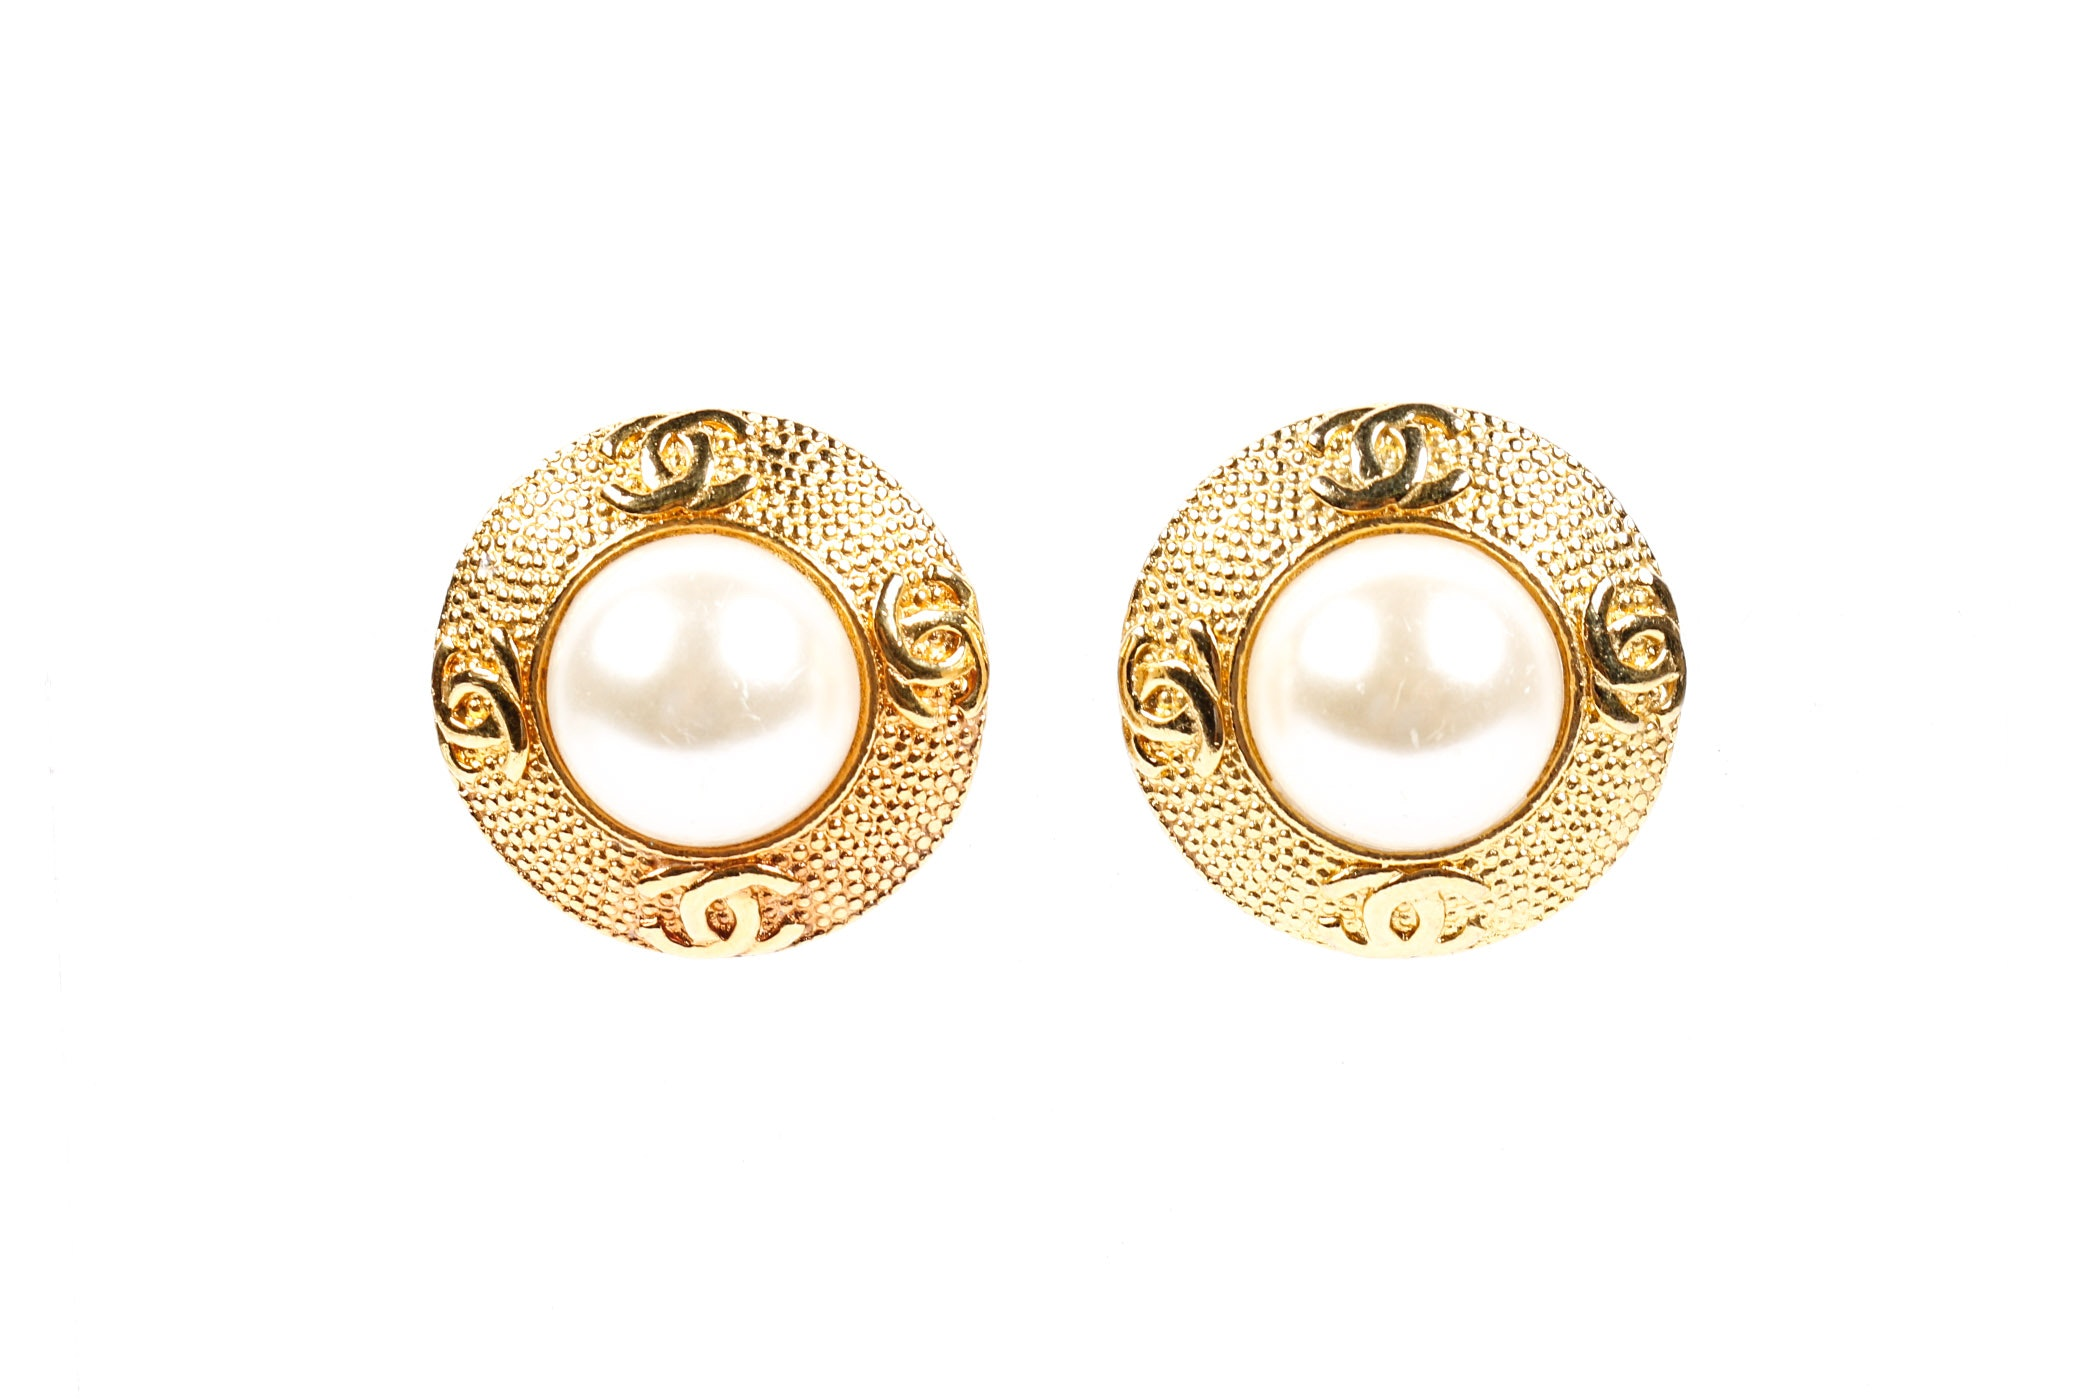 Vintage 1980s Chanel Faux Pearl and Gold Toned Earrings